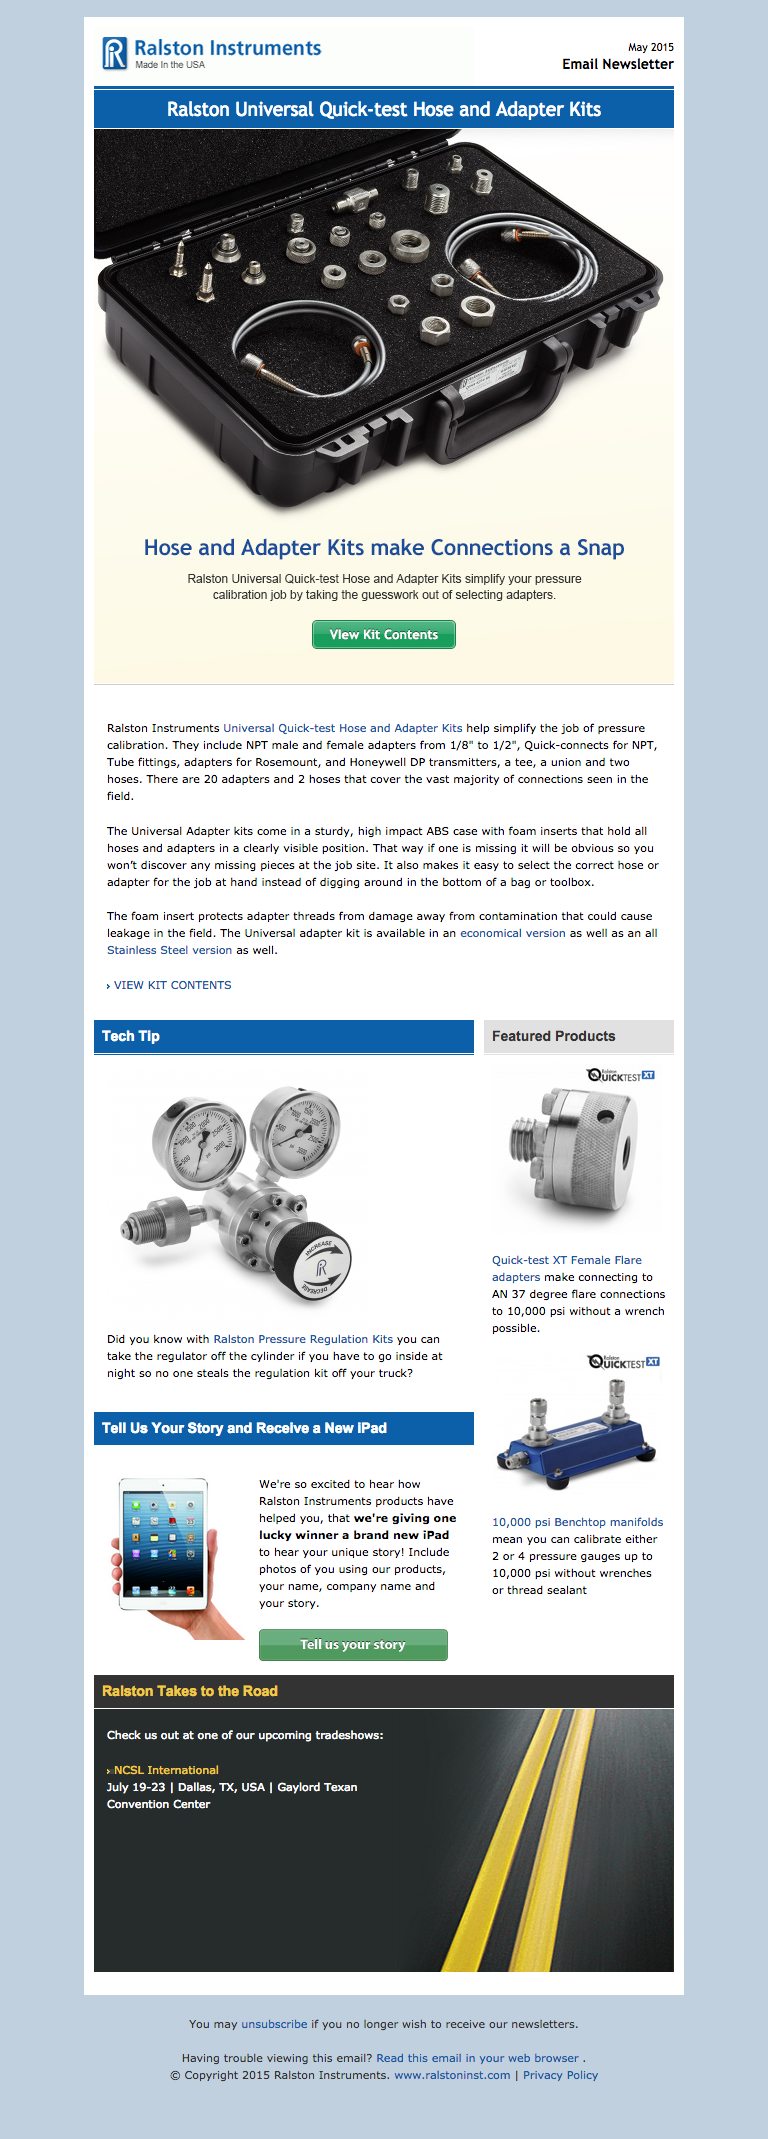 Ralston Instruments Newsletter - iPad view